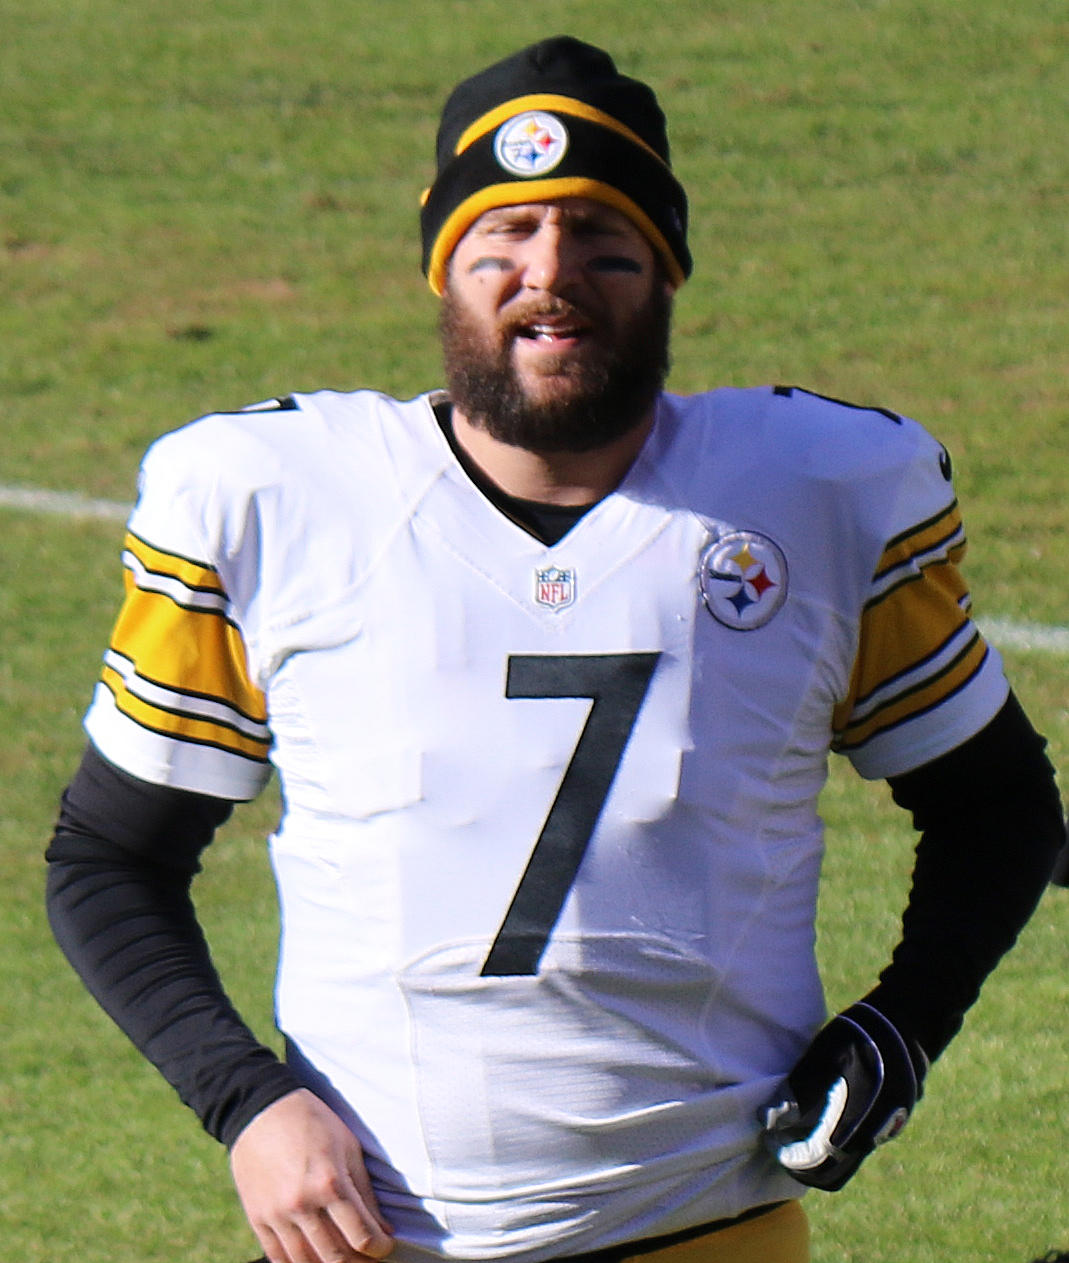 f8c84ed54 Ben Roethlisberger Net Worth 2018: What is this NFL football player worth?